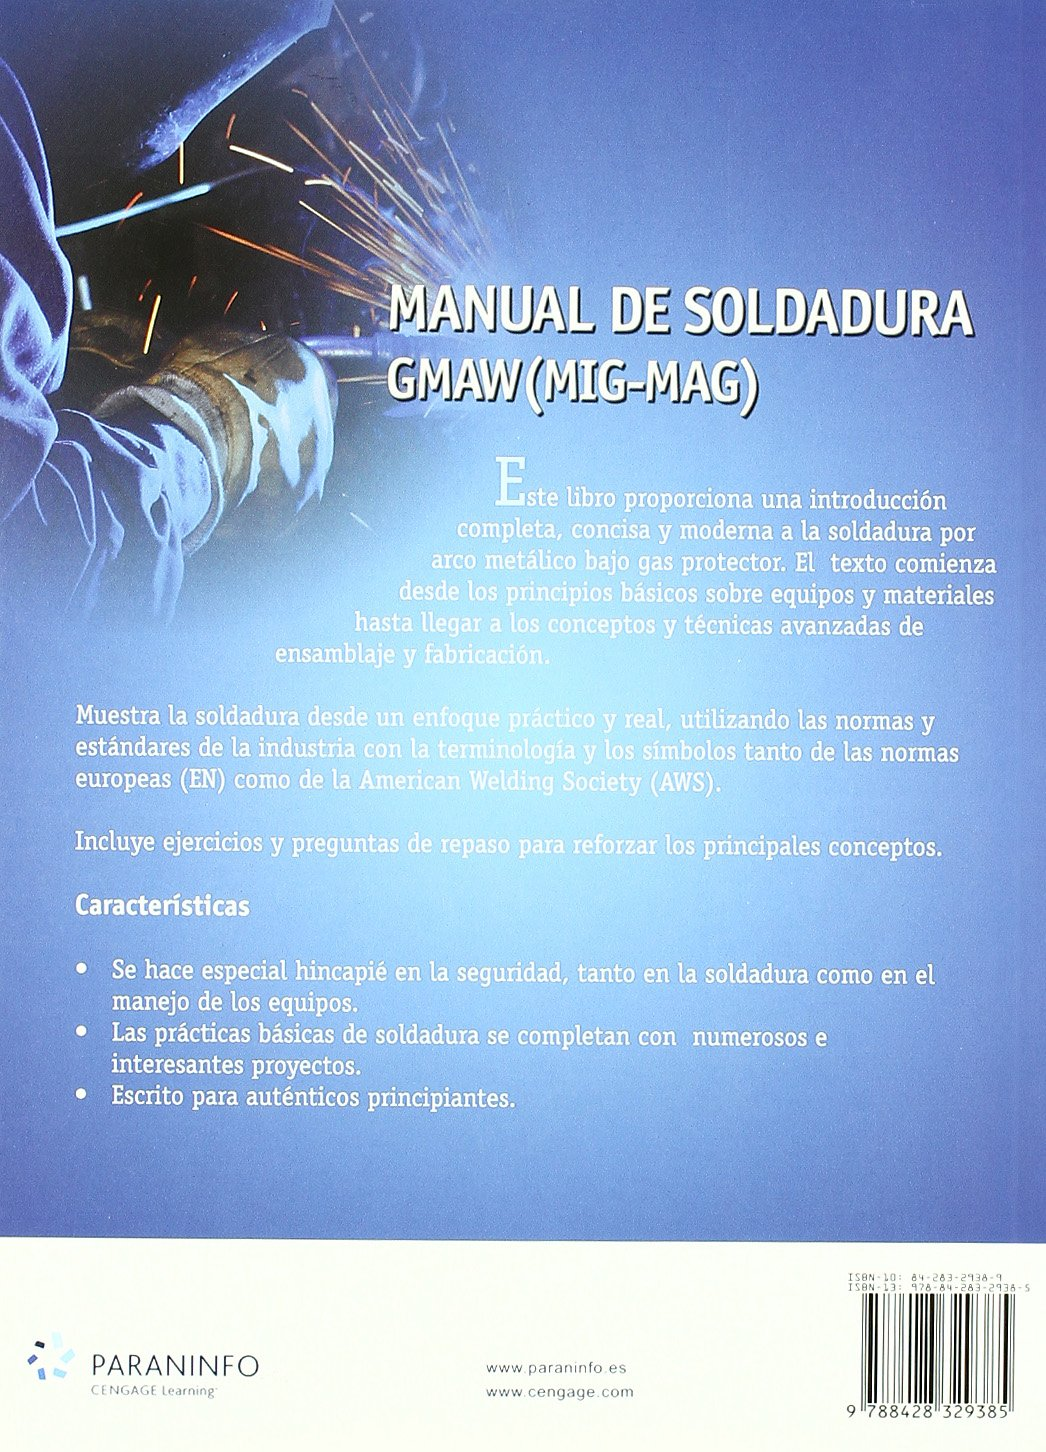 Manual de soldadura gmaw (MIG-MAG): Amazon.es: LARRY JEFFUS, RICHARD ROWE: Libros